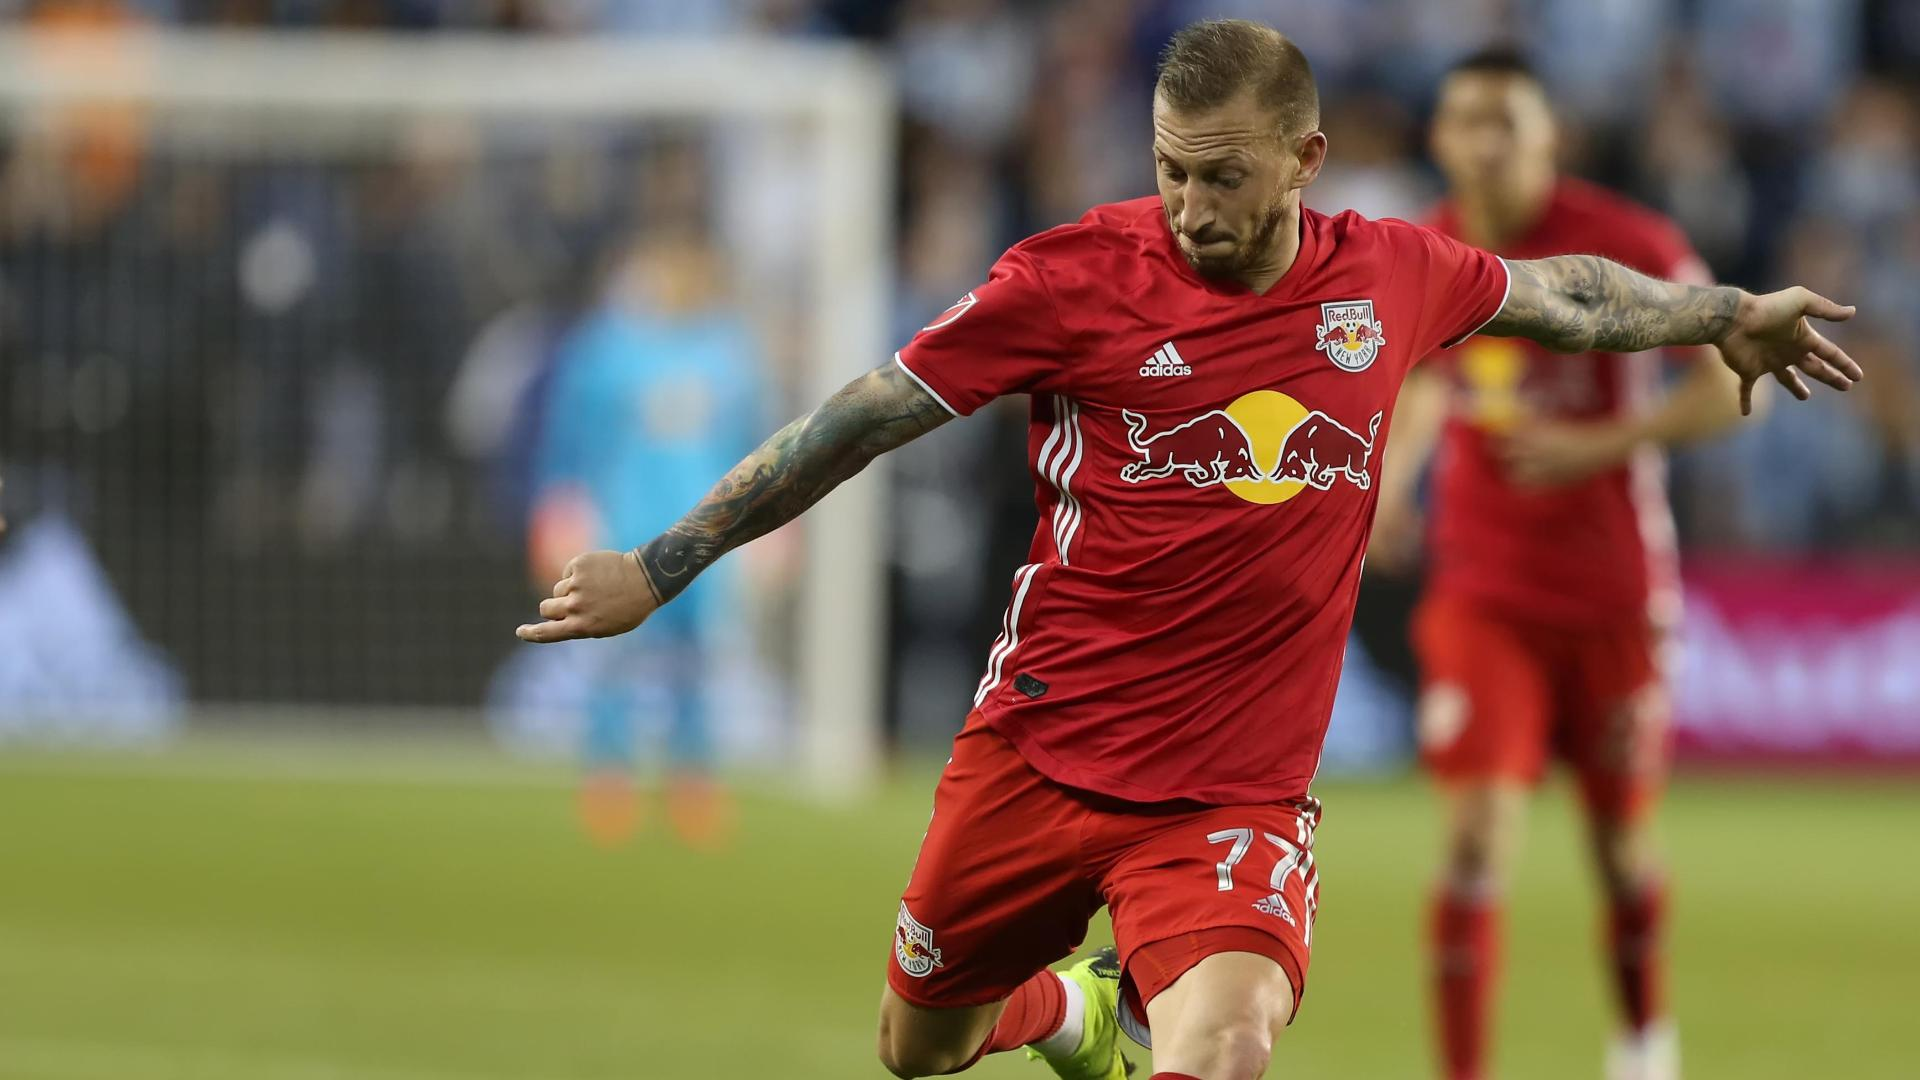 Royer's clinical finish brings NYRB level